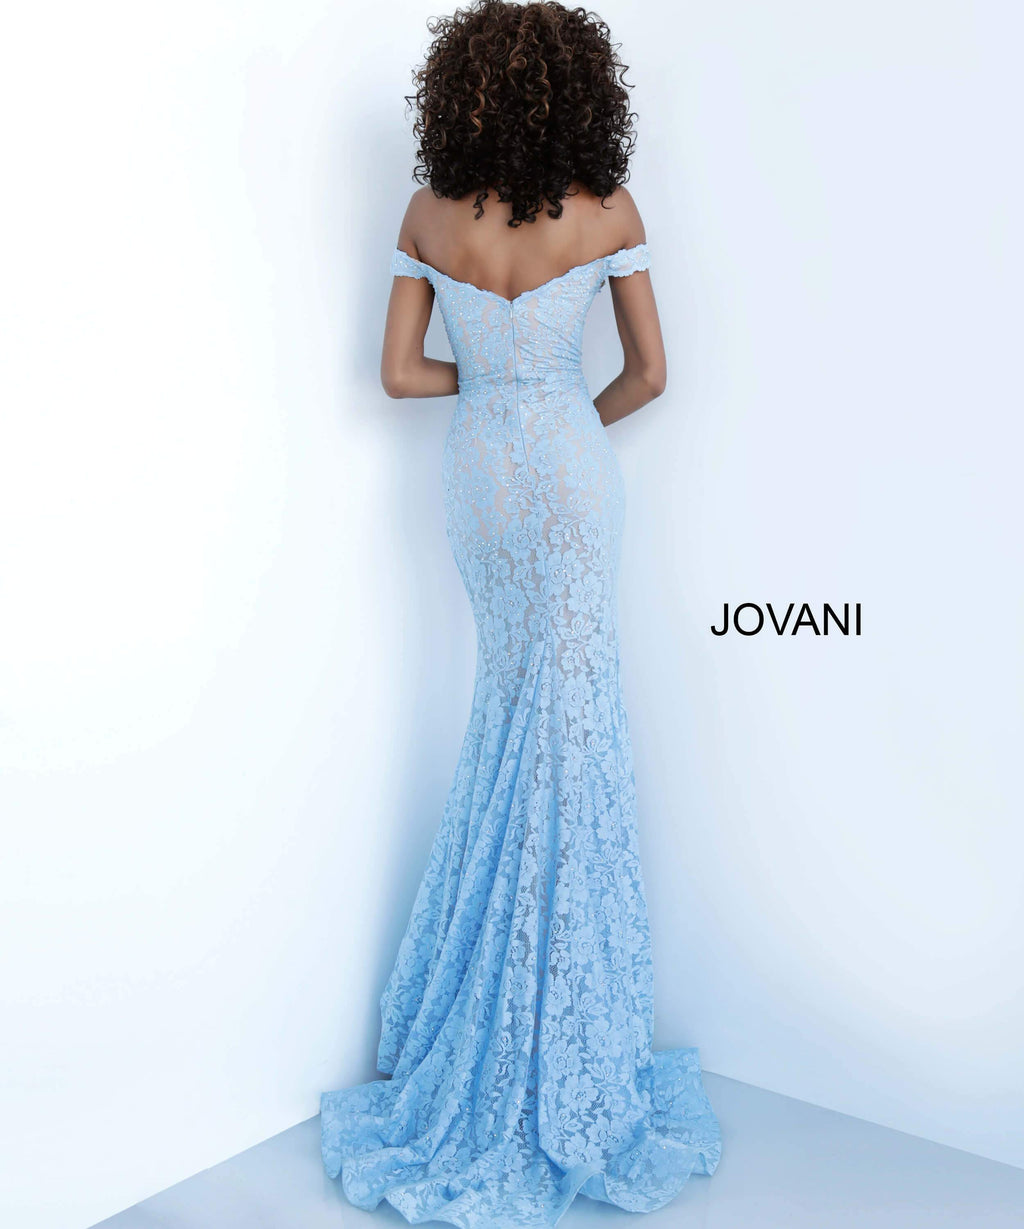 JOVANI 63704 Off Shoulder Lace Evening Dress